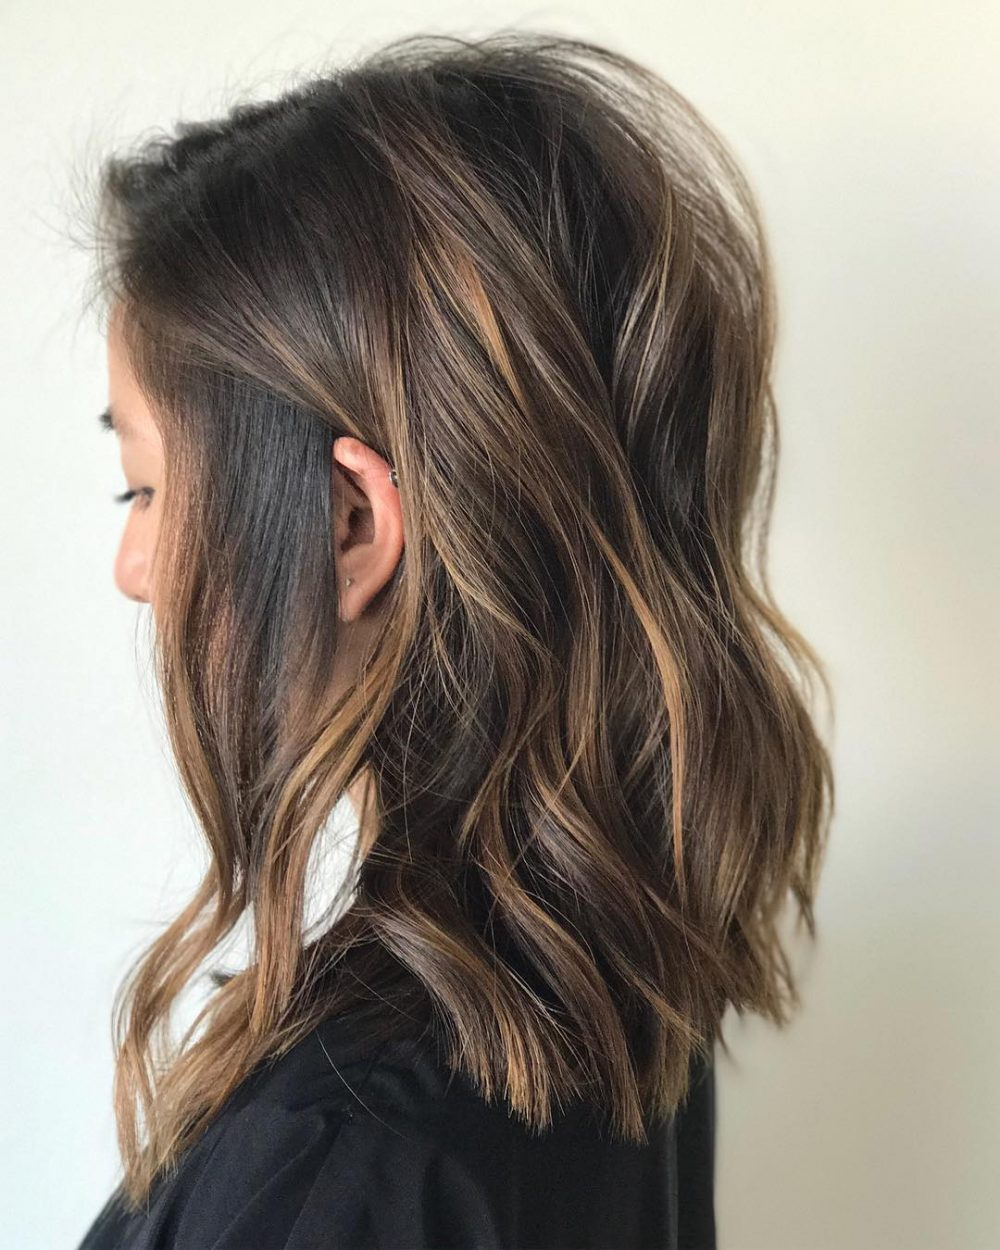 Tousled & Effortless hairstyle